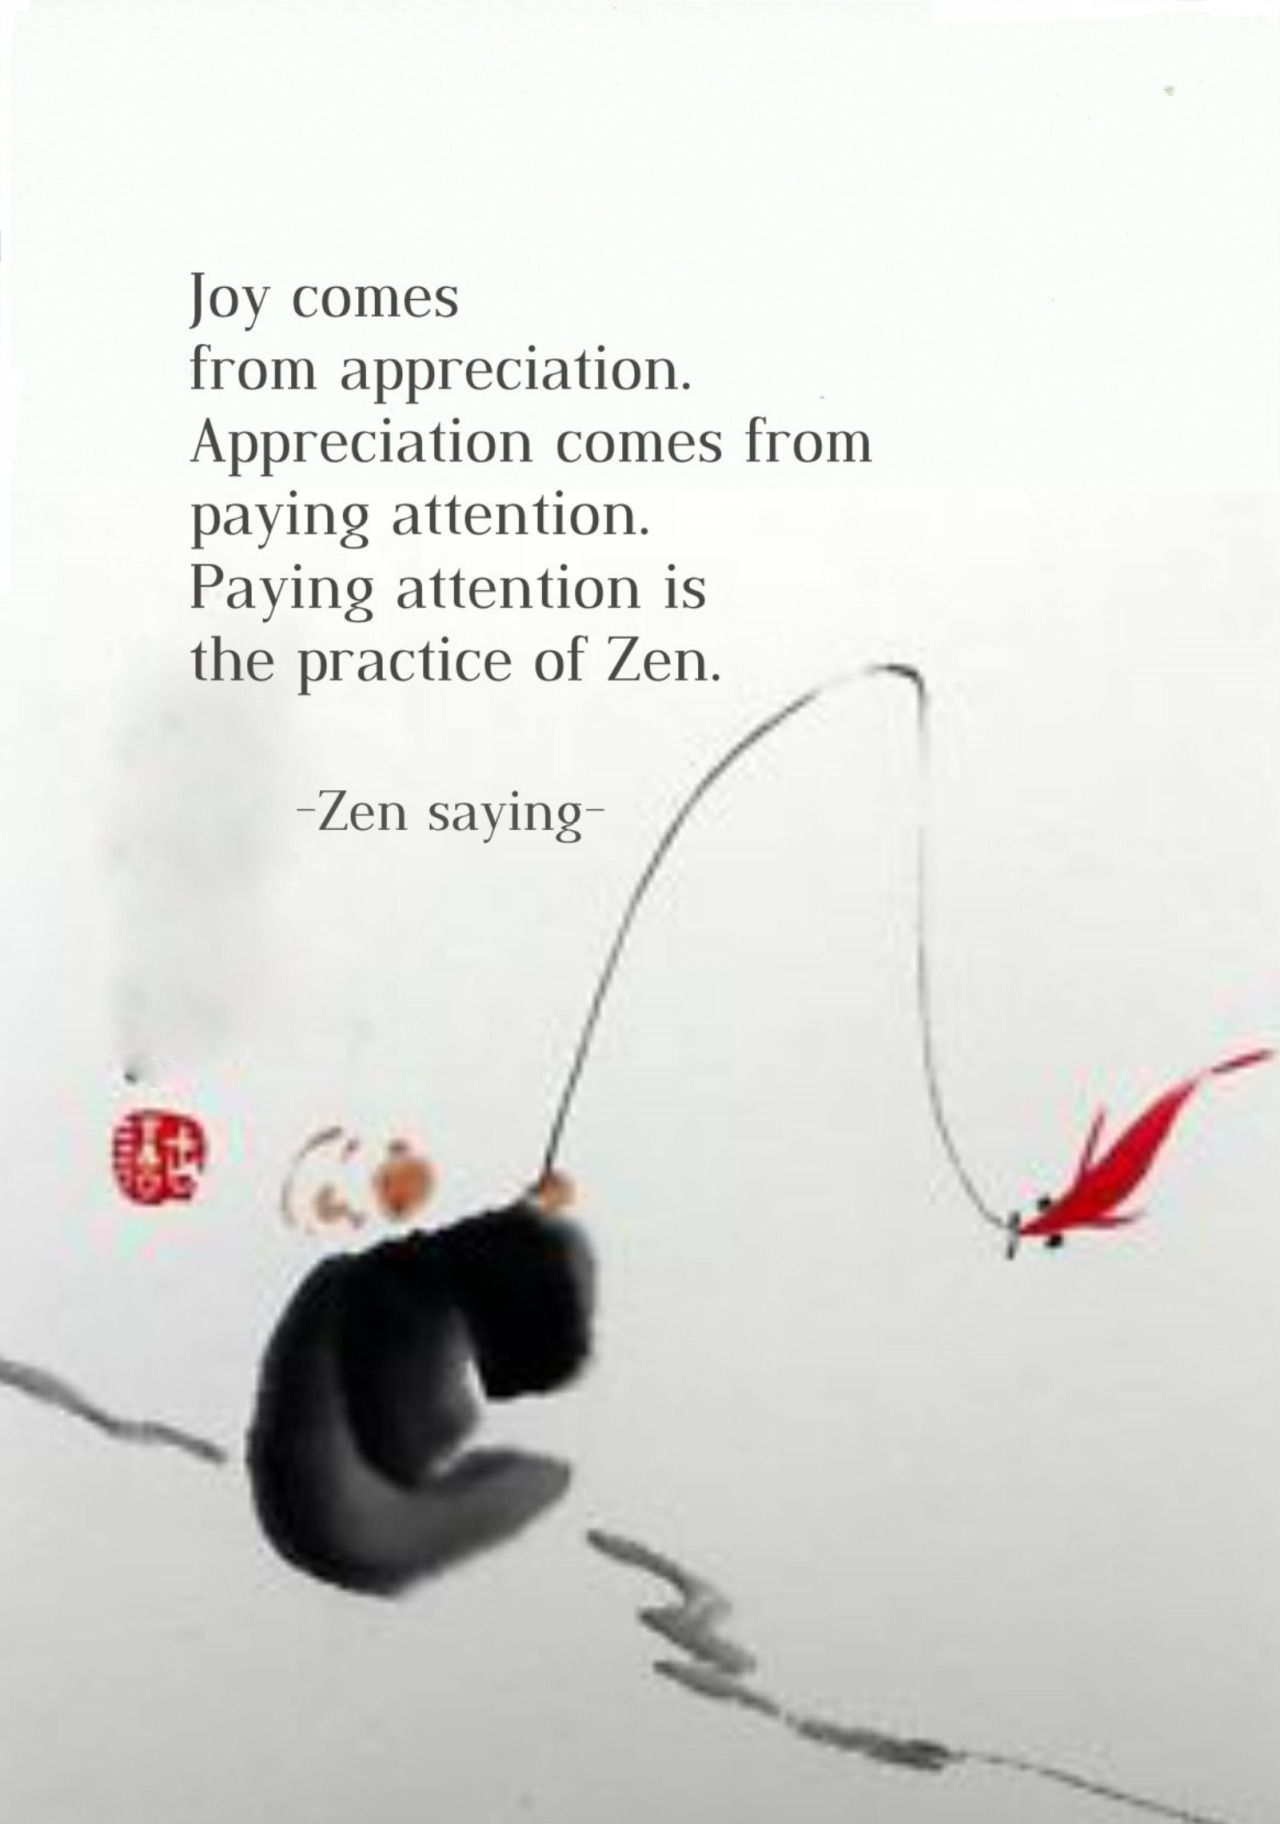 Image result for image zen quotes mindfulness paying attention